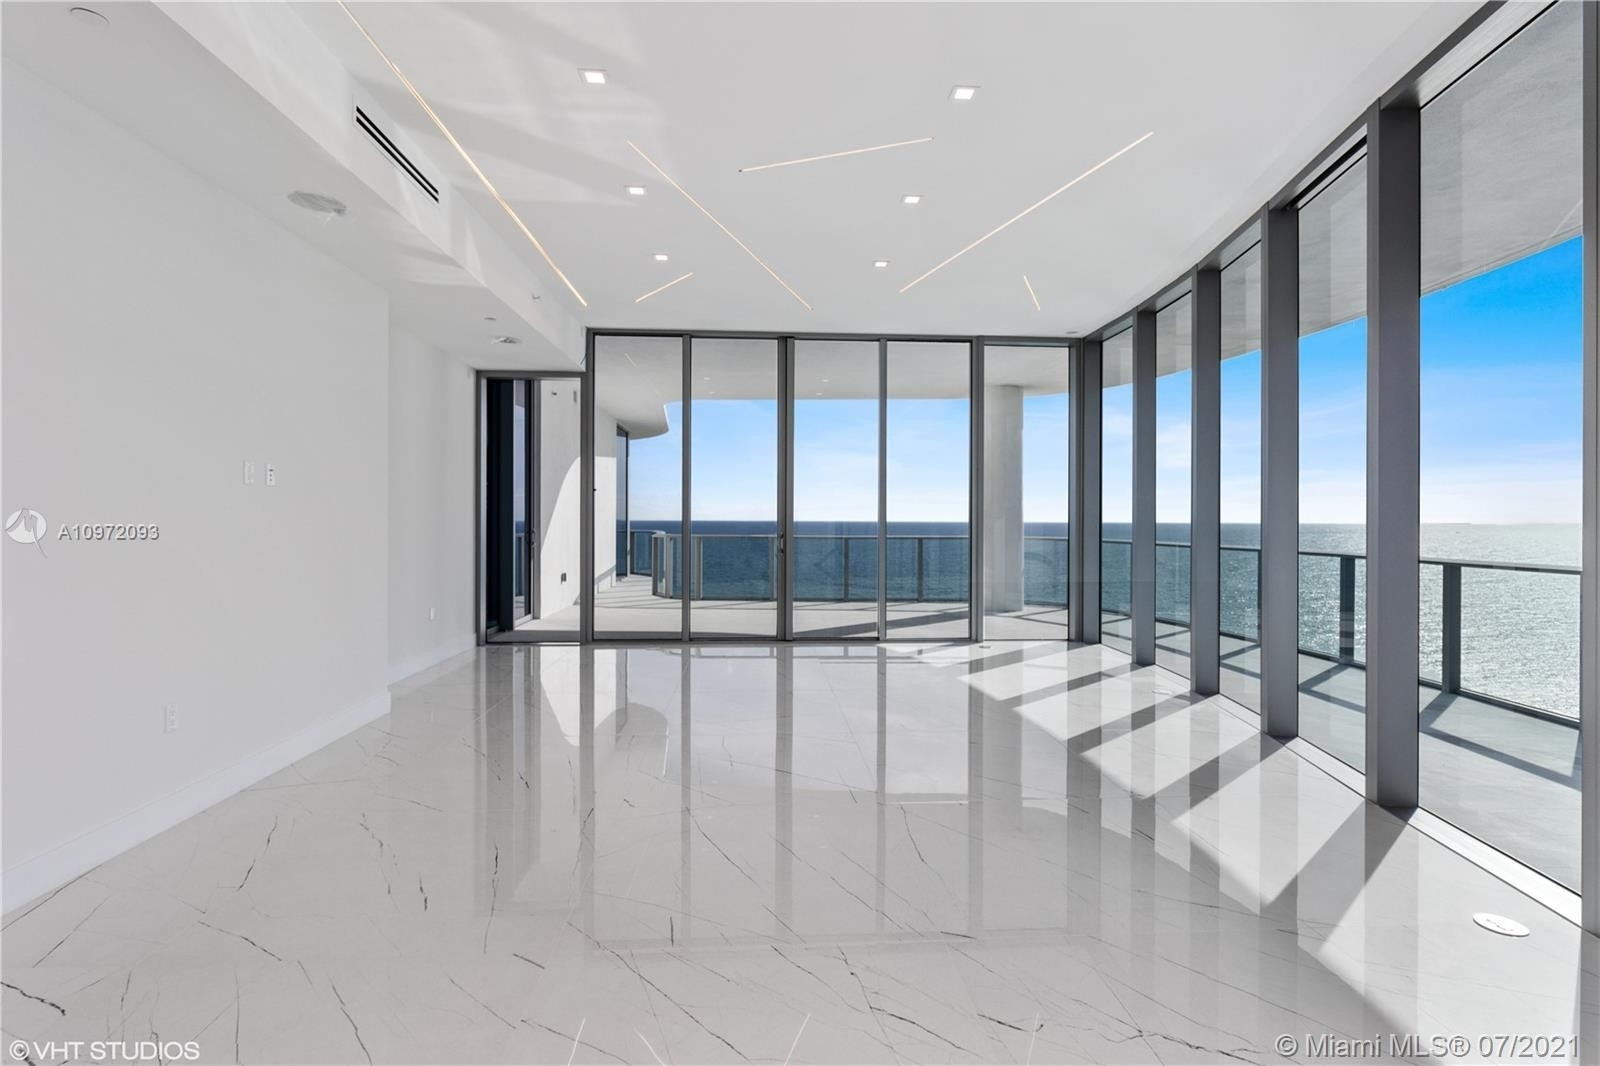 6. Condominiums for Sale at 17475 Collins Ave , 1501 Sunny Isles Beach, FL 33160